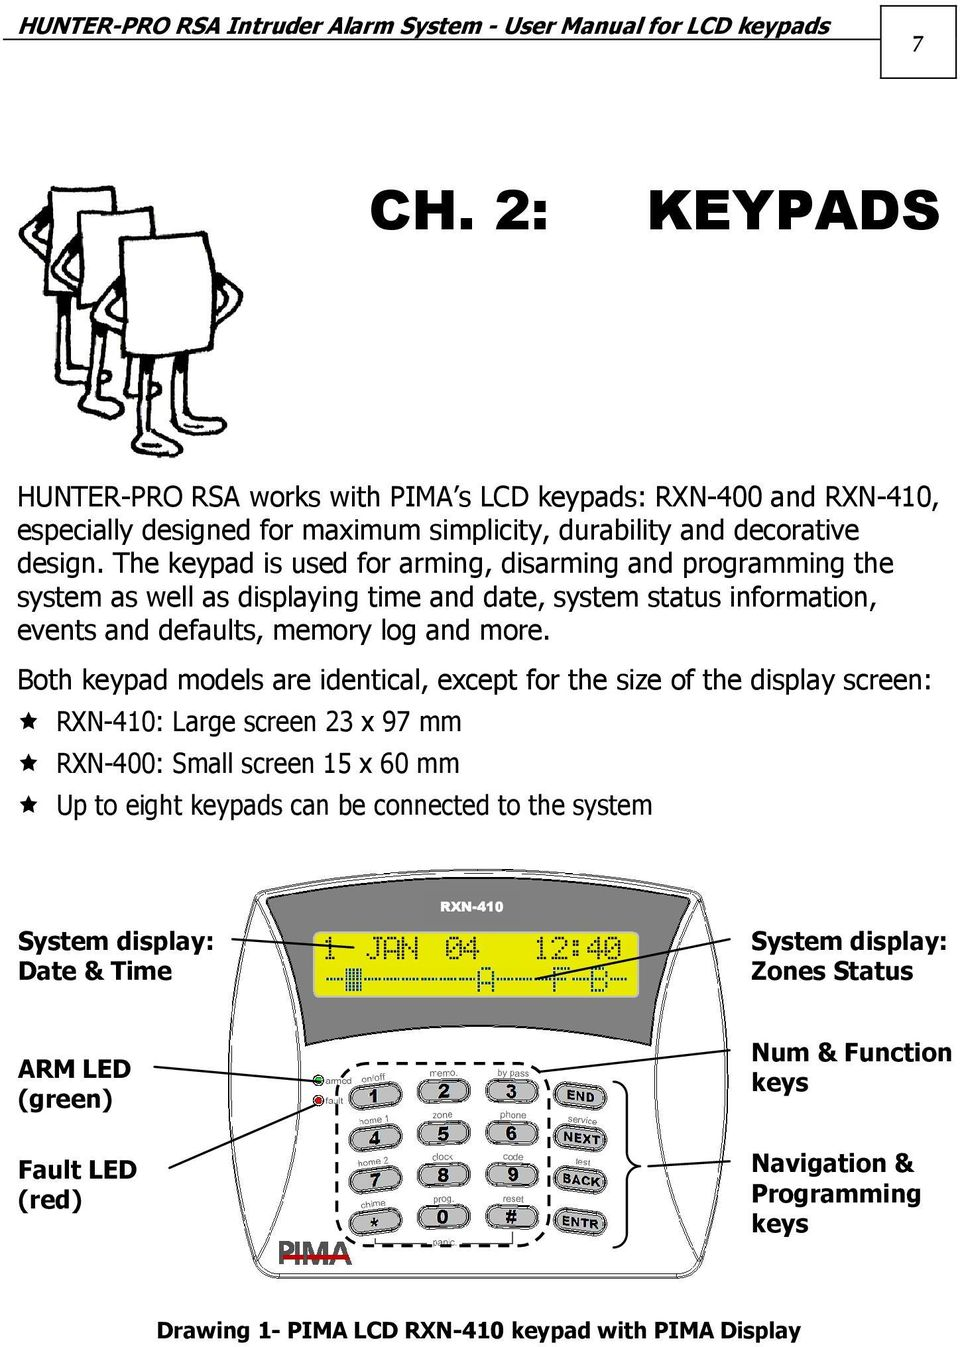 The keypad is used for arming, disarming and programming the system as well as displaying time and date, system status information, events and defaults, memory log and more.